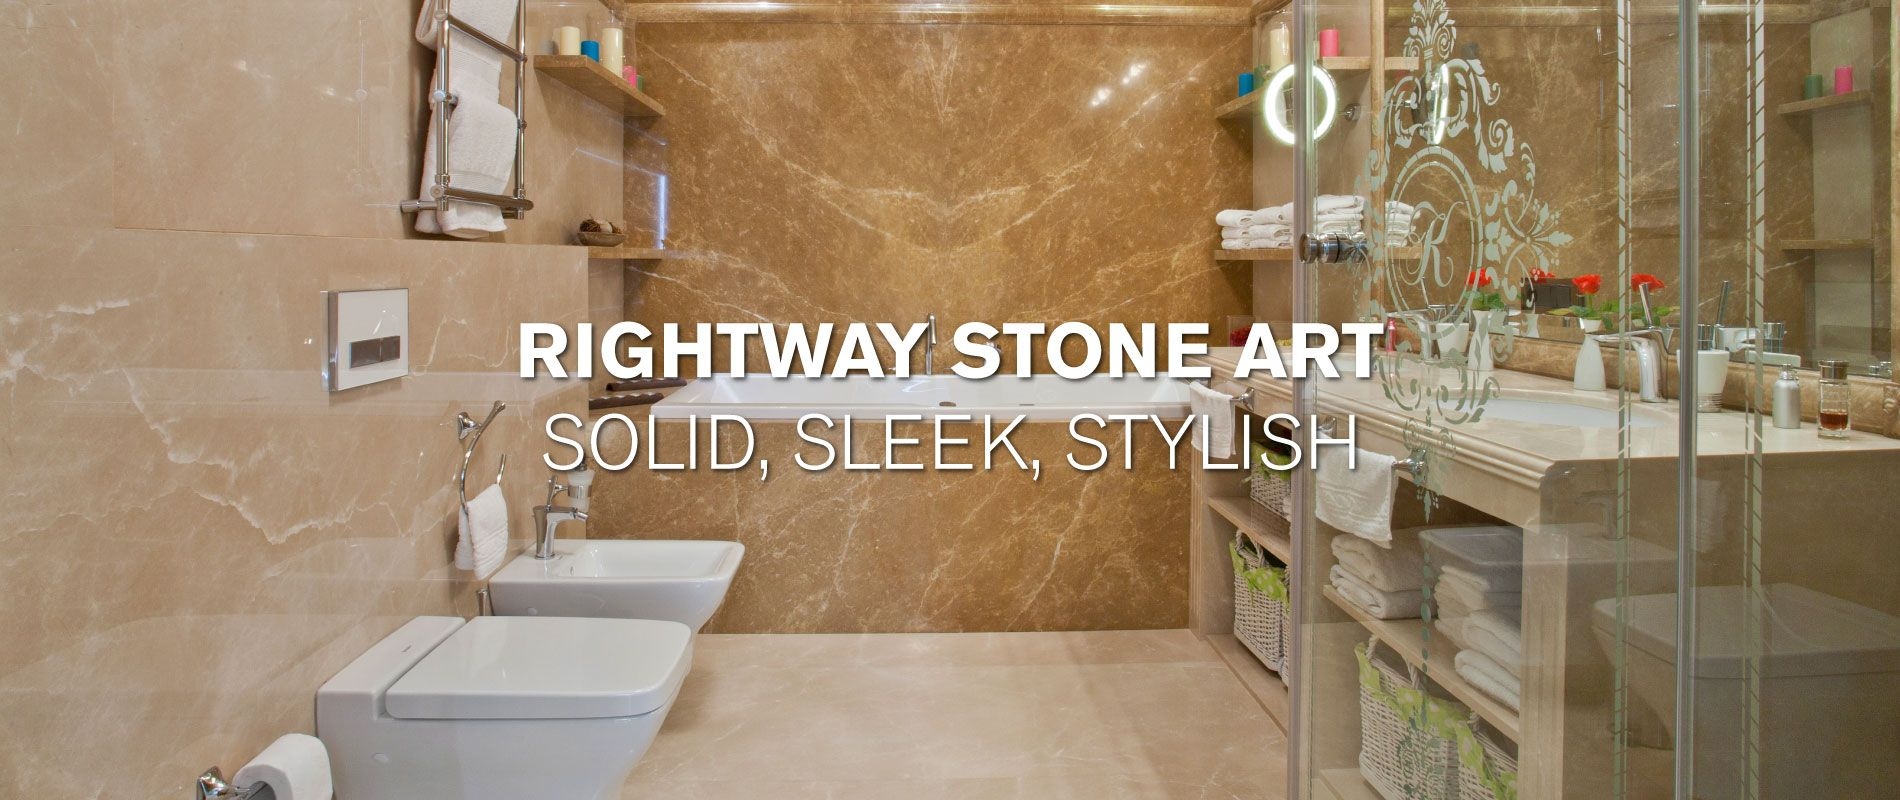 Rightway Stone Art | Solid, Sleek, Stylish | Bathroom with granite floors and walls